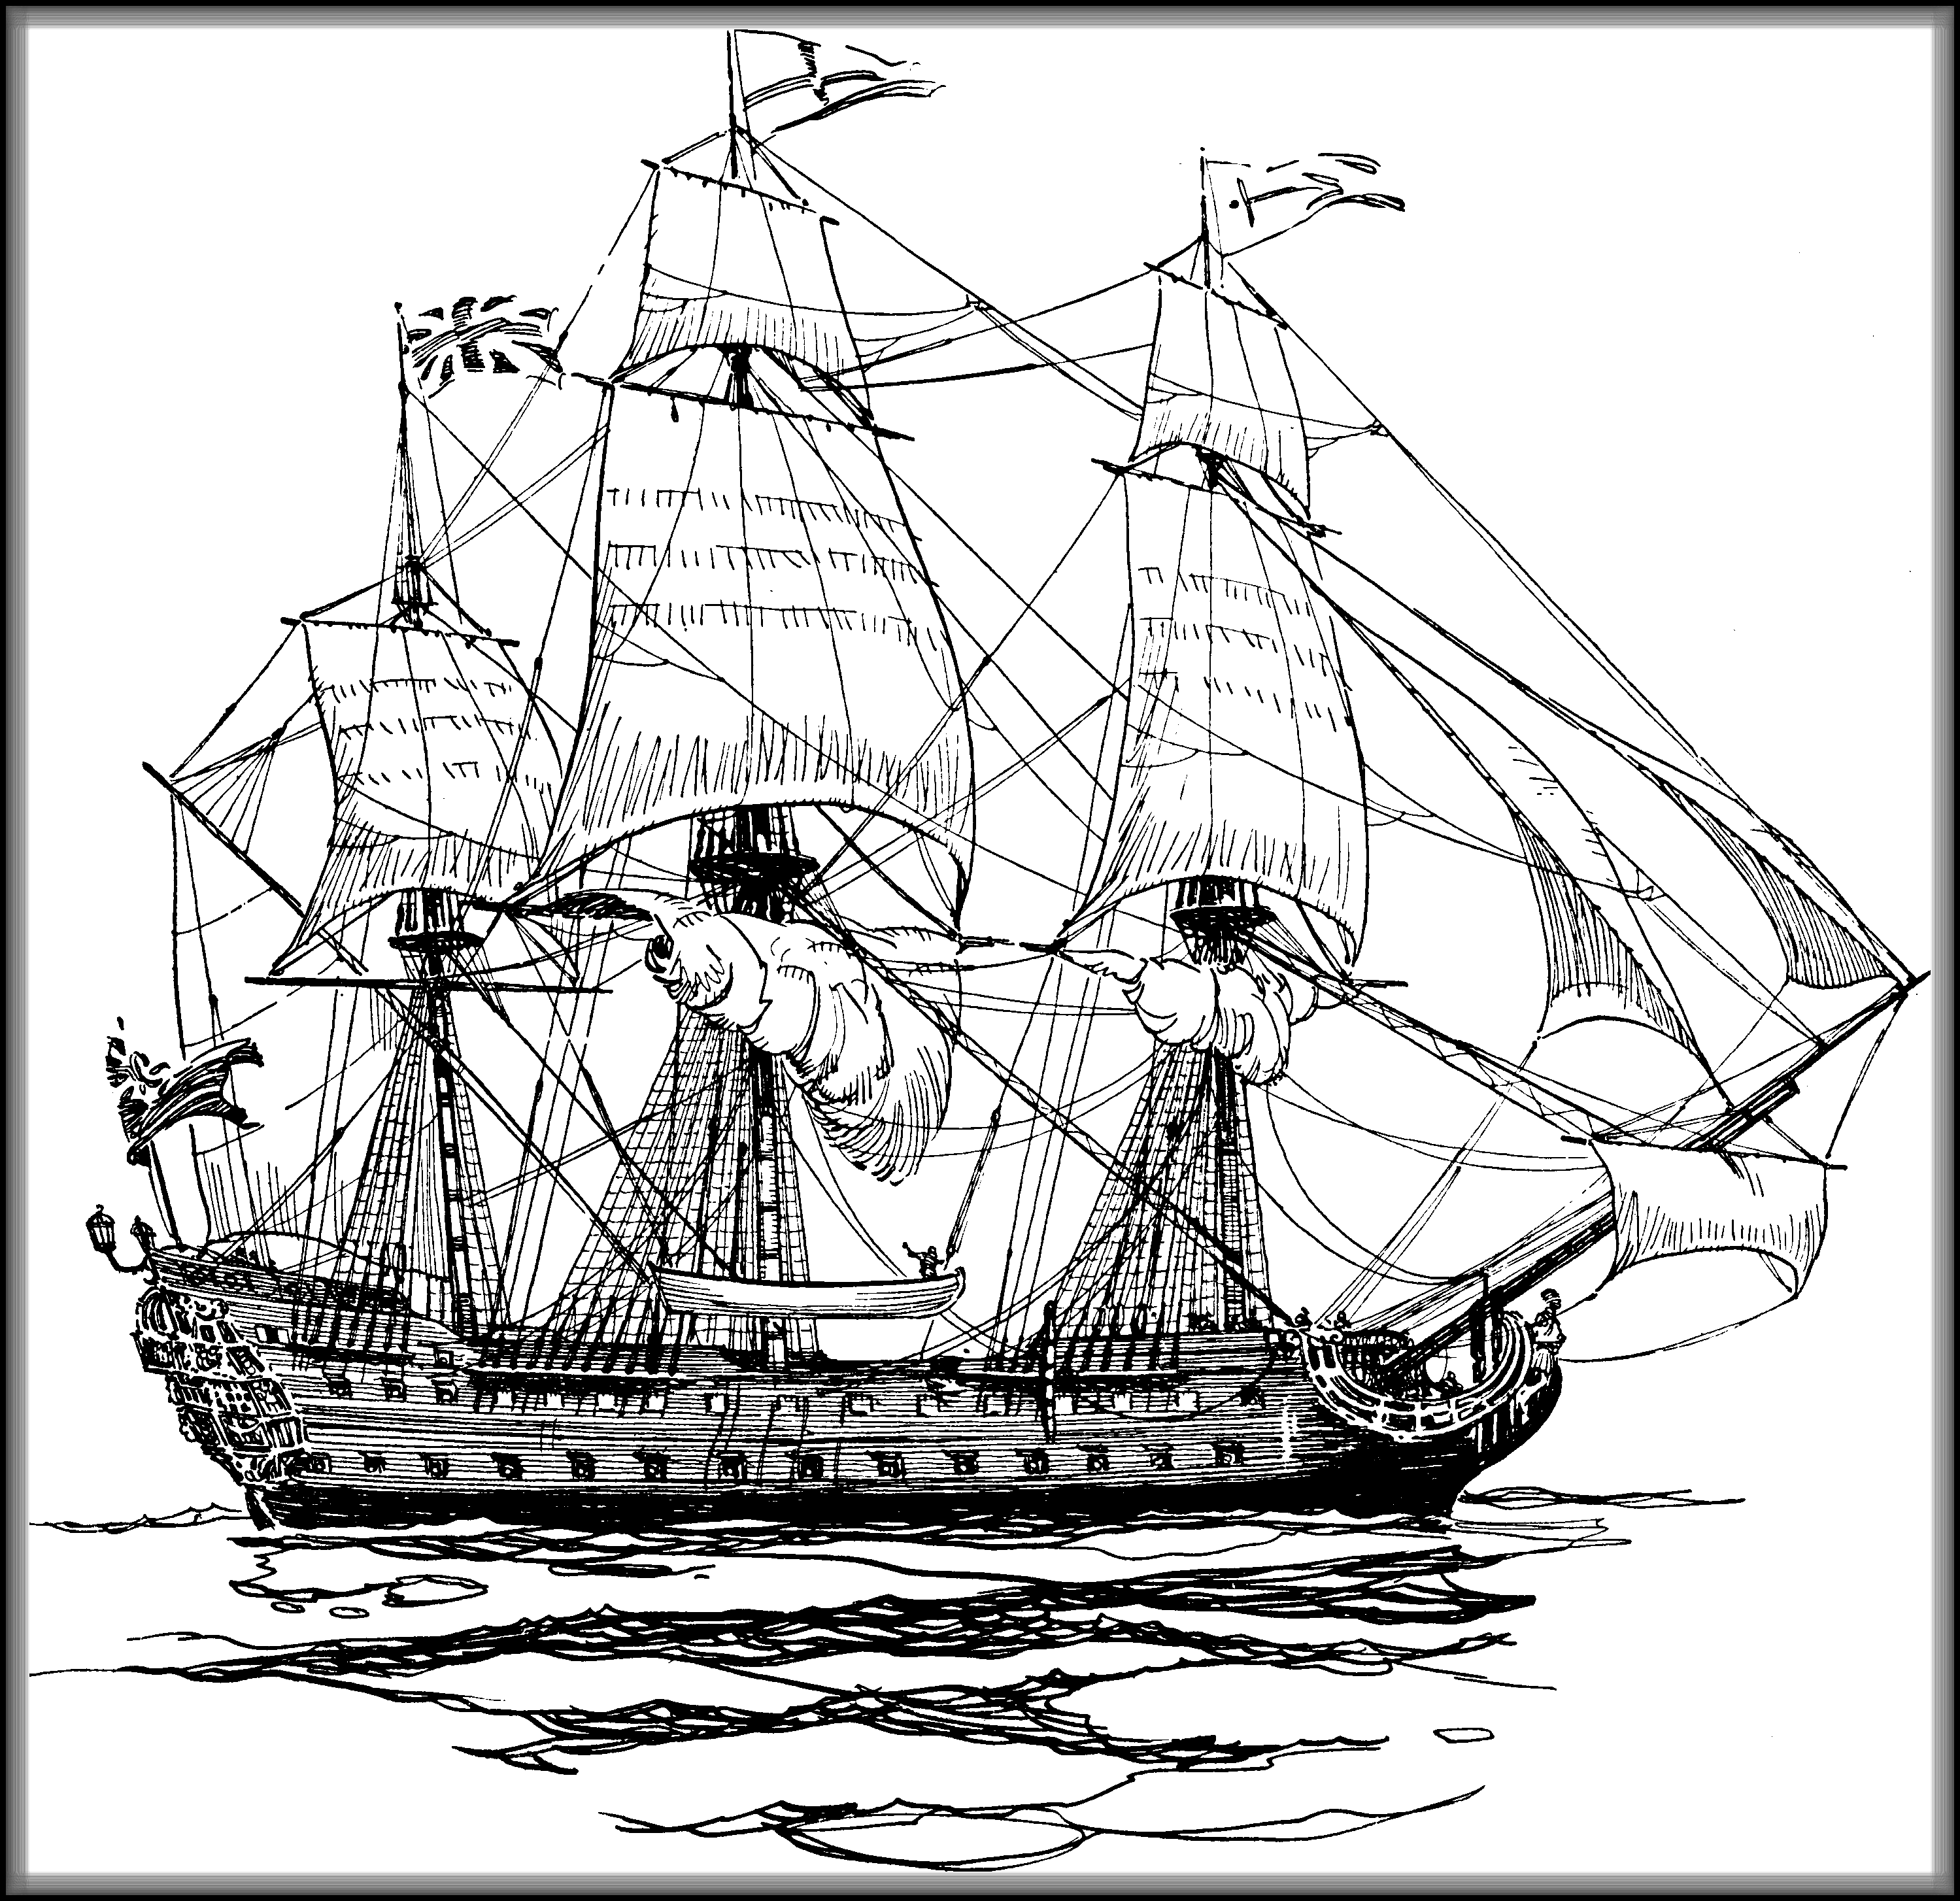 pirate ship drawing british ship of the line drawing pirate ship drawing ship pirate drawing